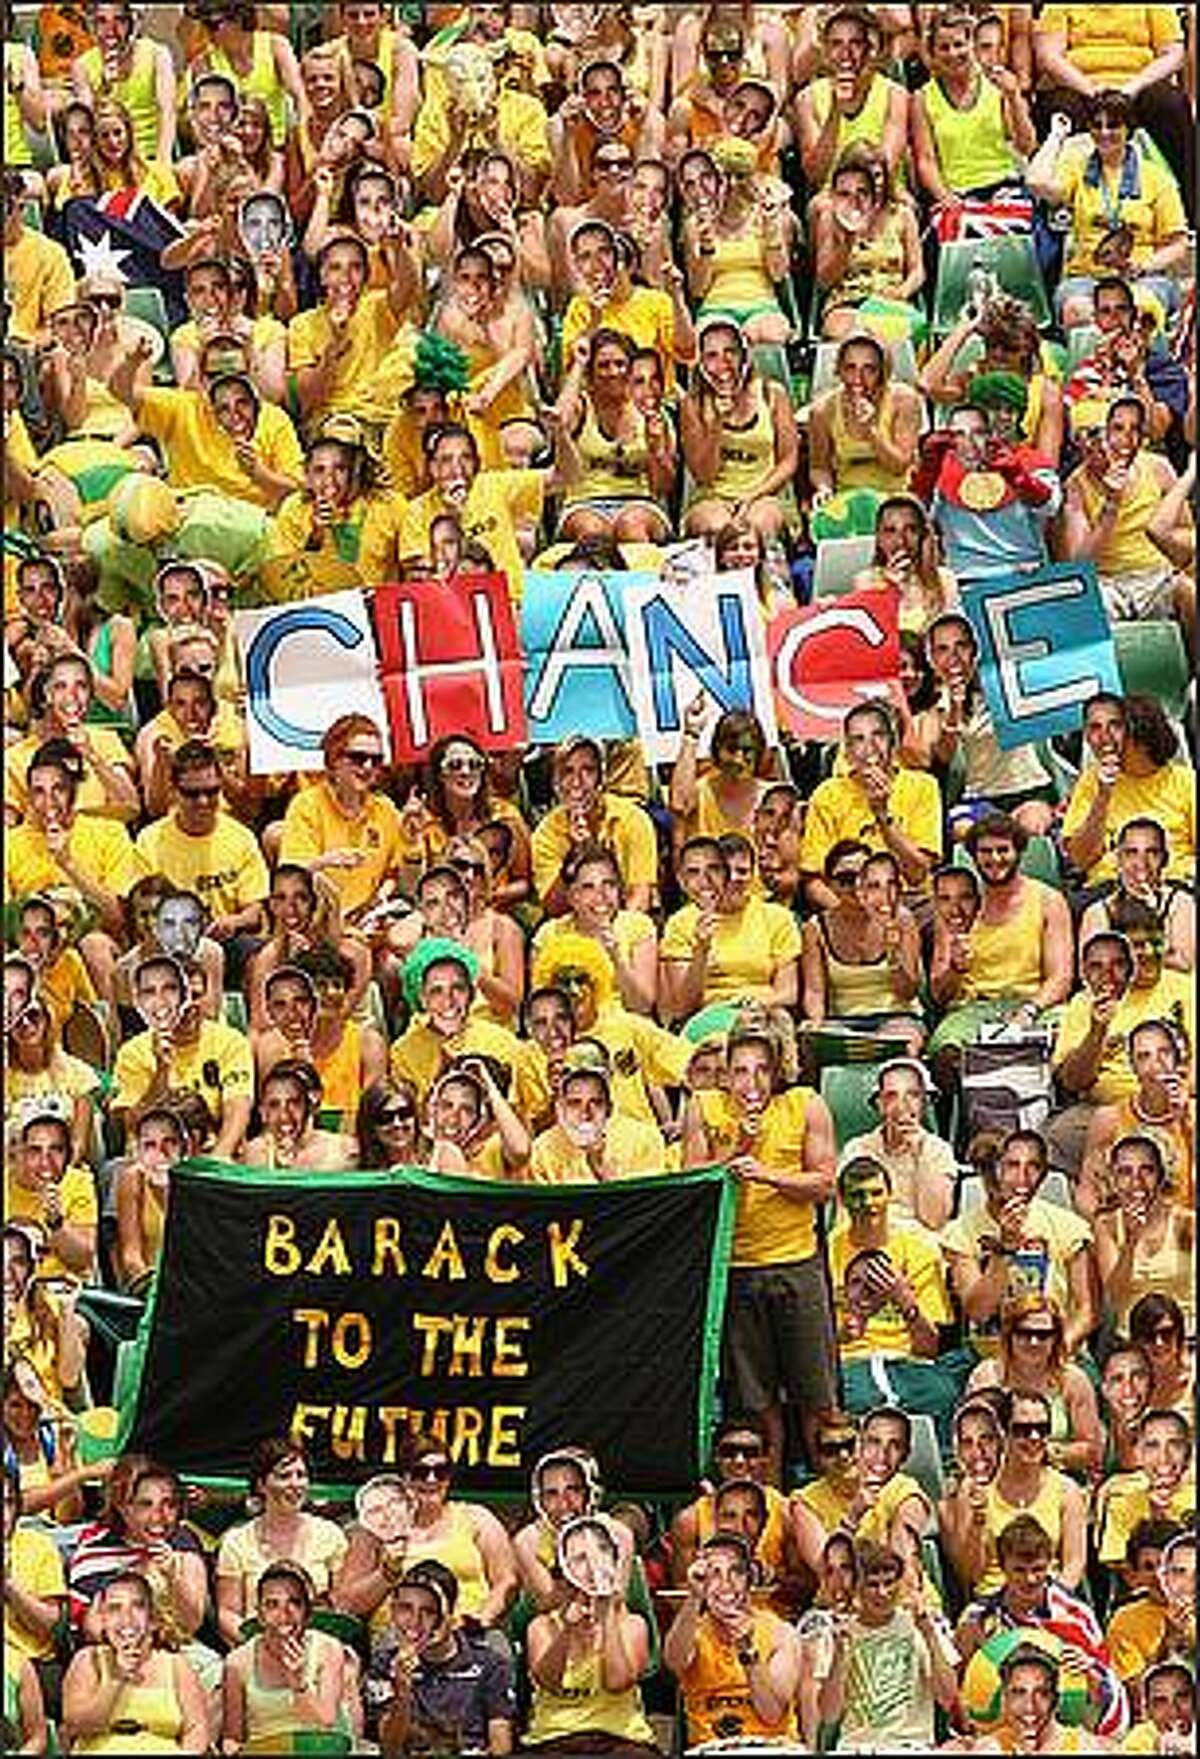 Australian fans hold up masks showing new US President Barack Obama during the second round match between Jessica Moore of Australia and Flavia Pennetta of Italy during day four of the 2009 Australian Open at Melbourne Park in Melbourne, Australia. (Photo by Quinn Rooney/Getty Images)